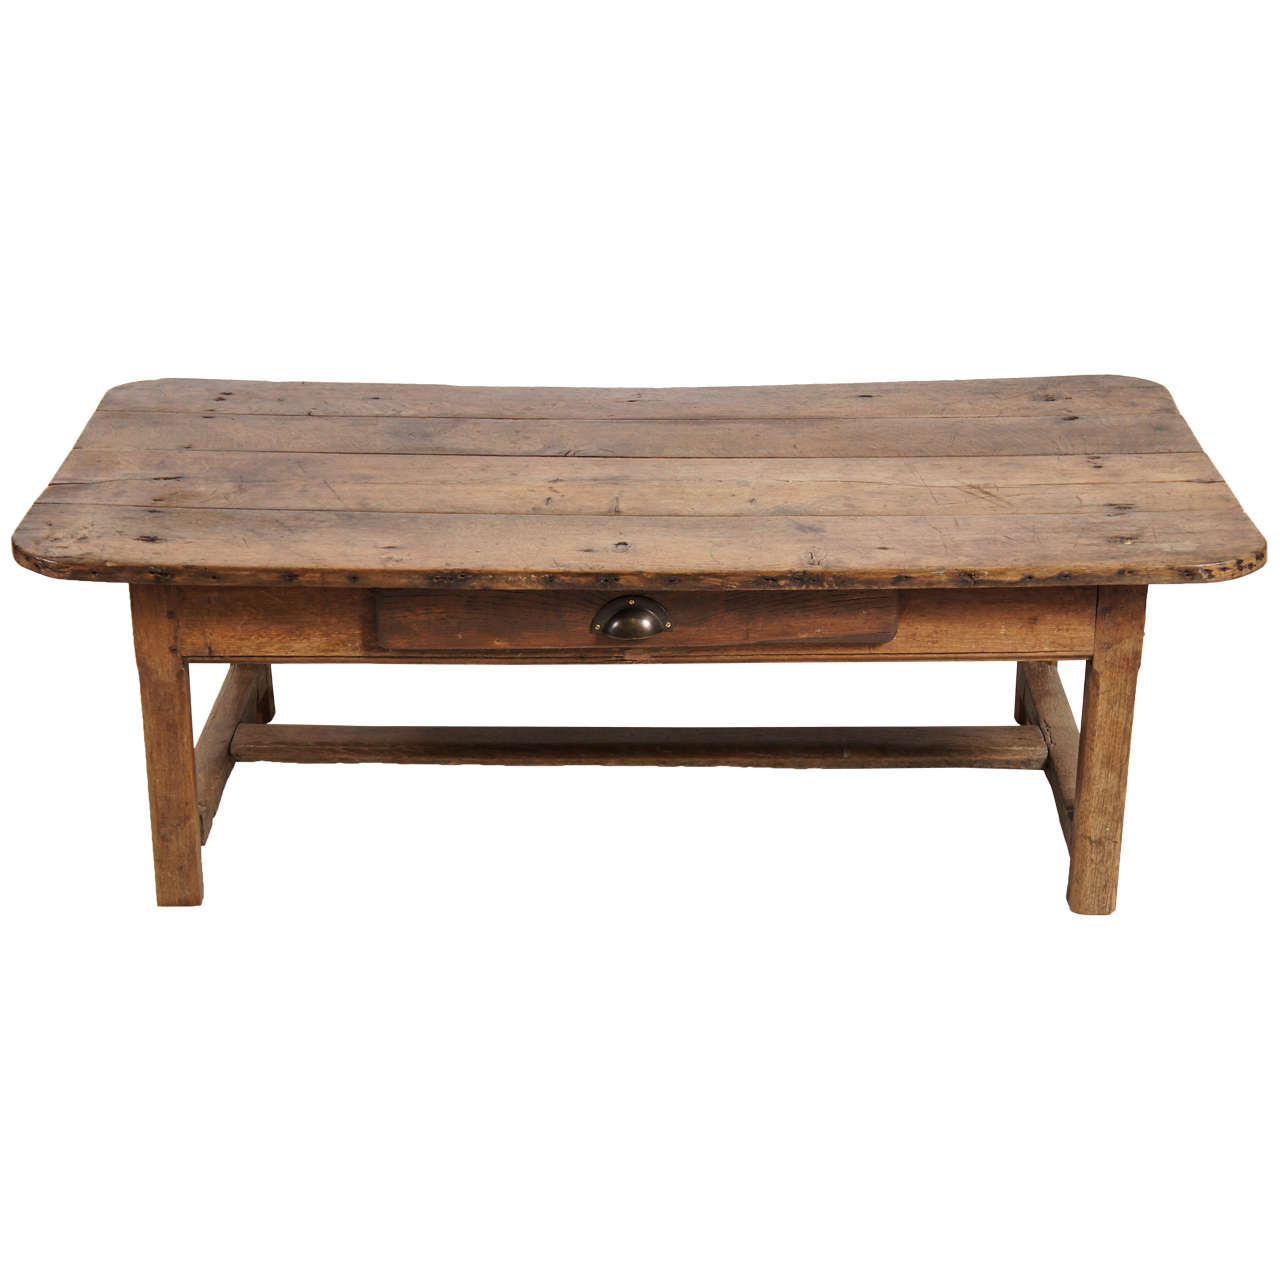 Irish pine coffee table at 1stdibs for Pine coffee table